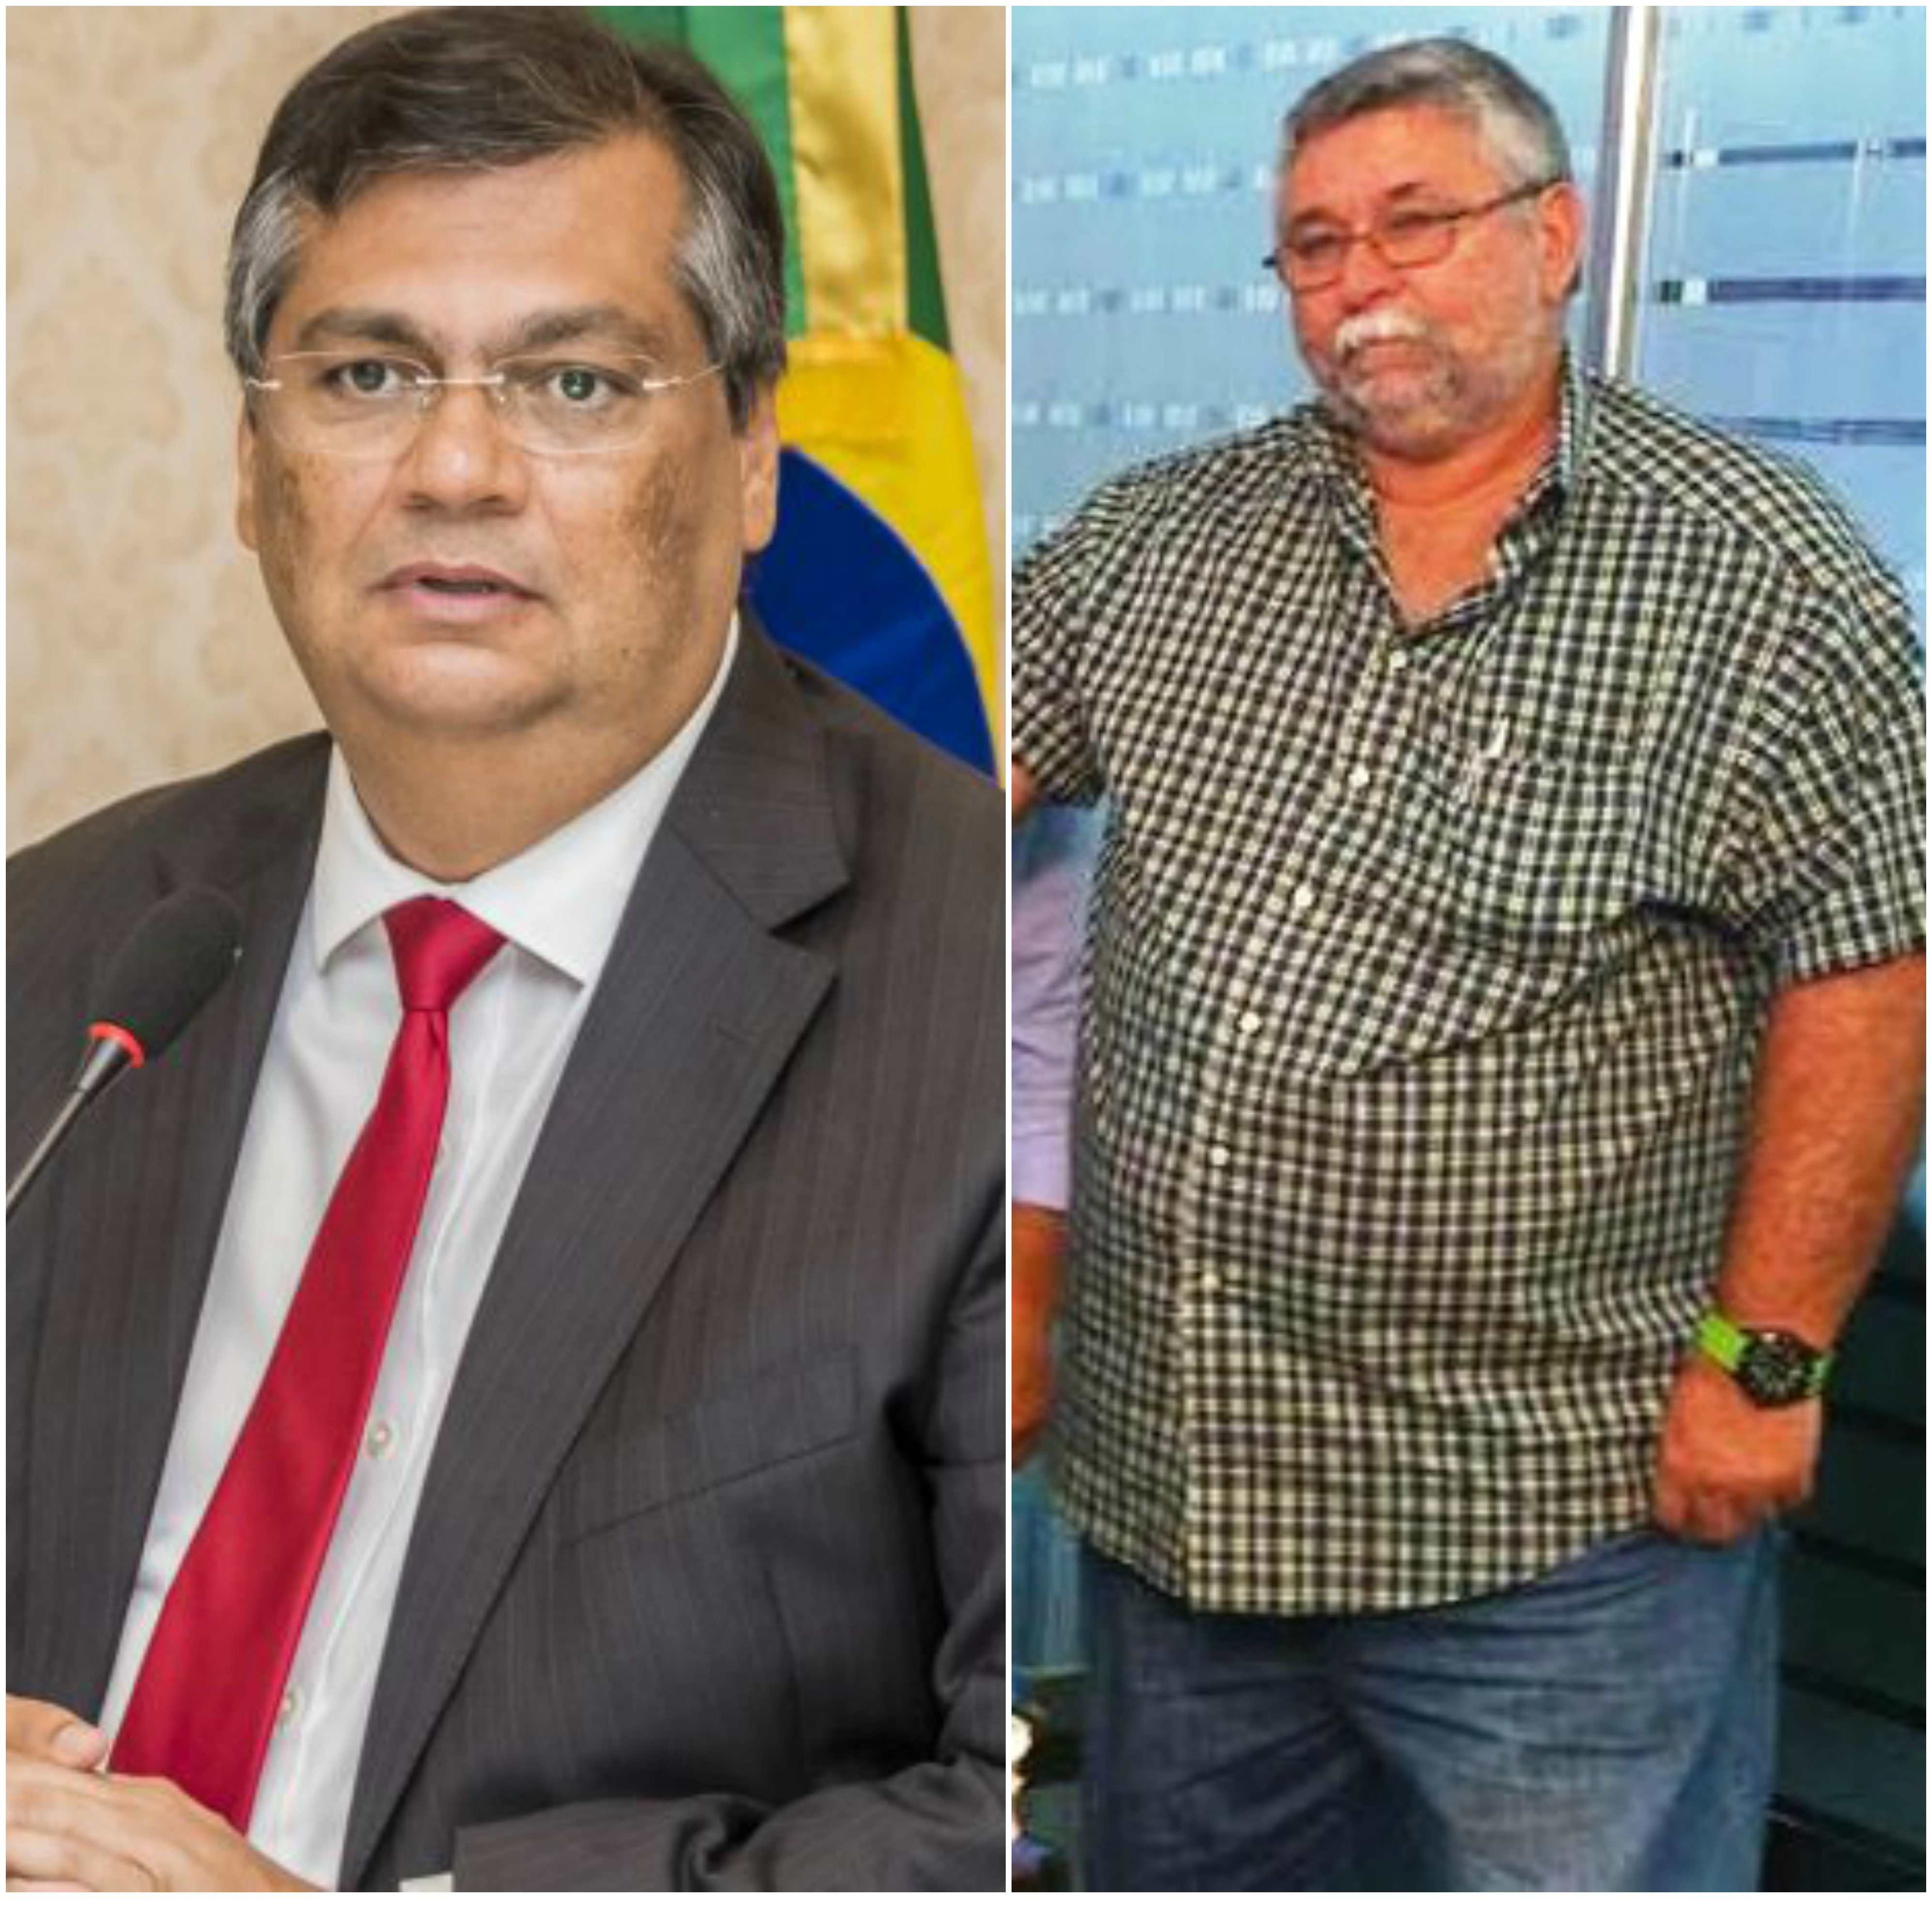 Flávio Dino e Fernandão Edeconsil na mira do MP.